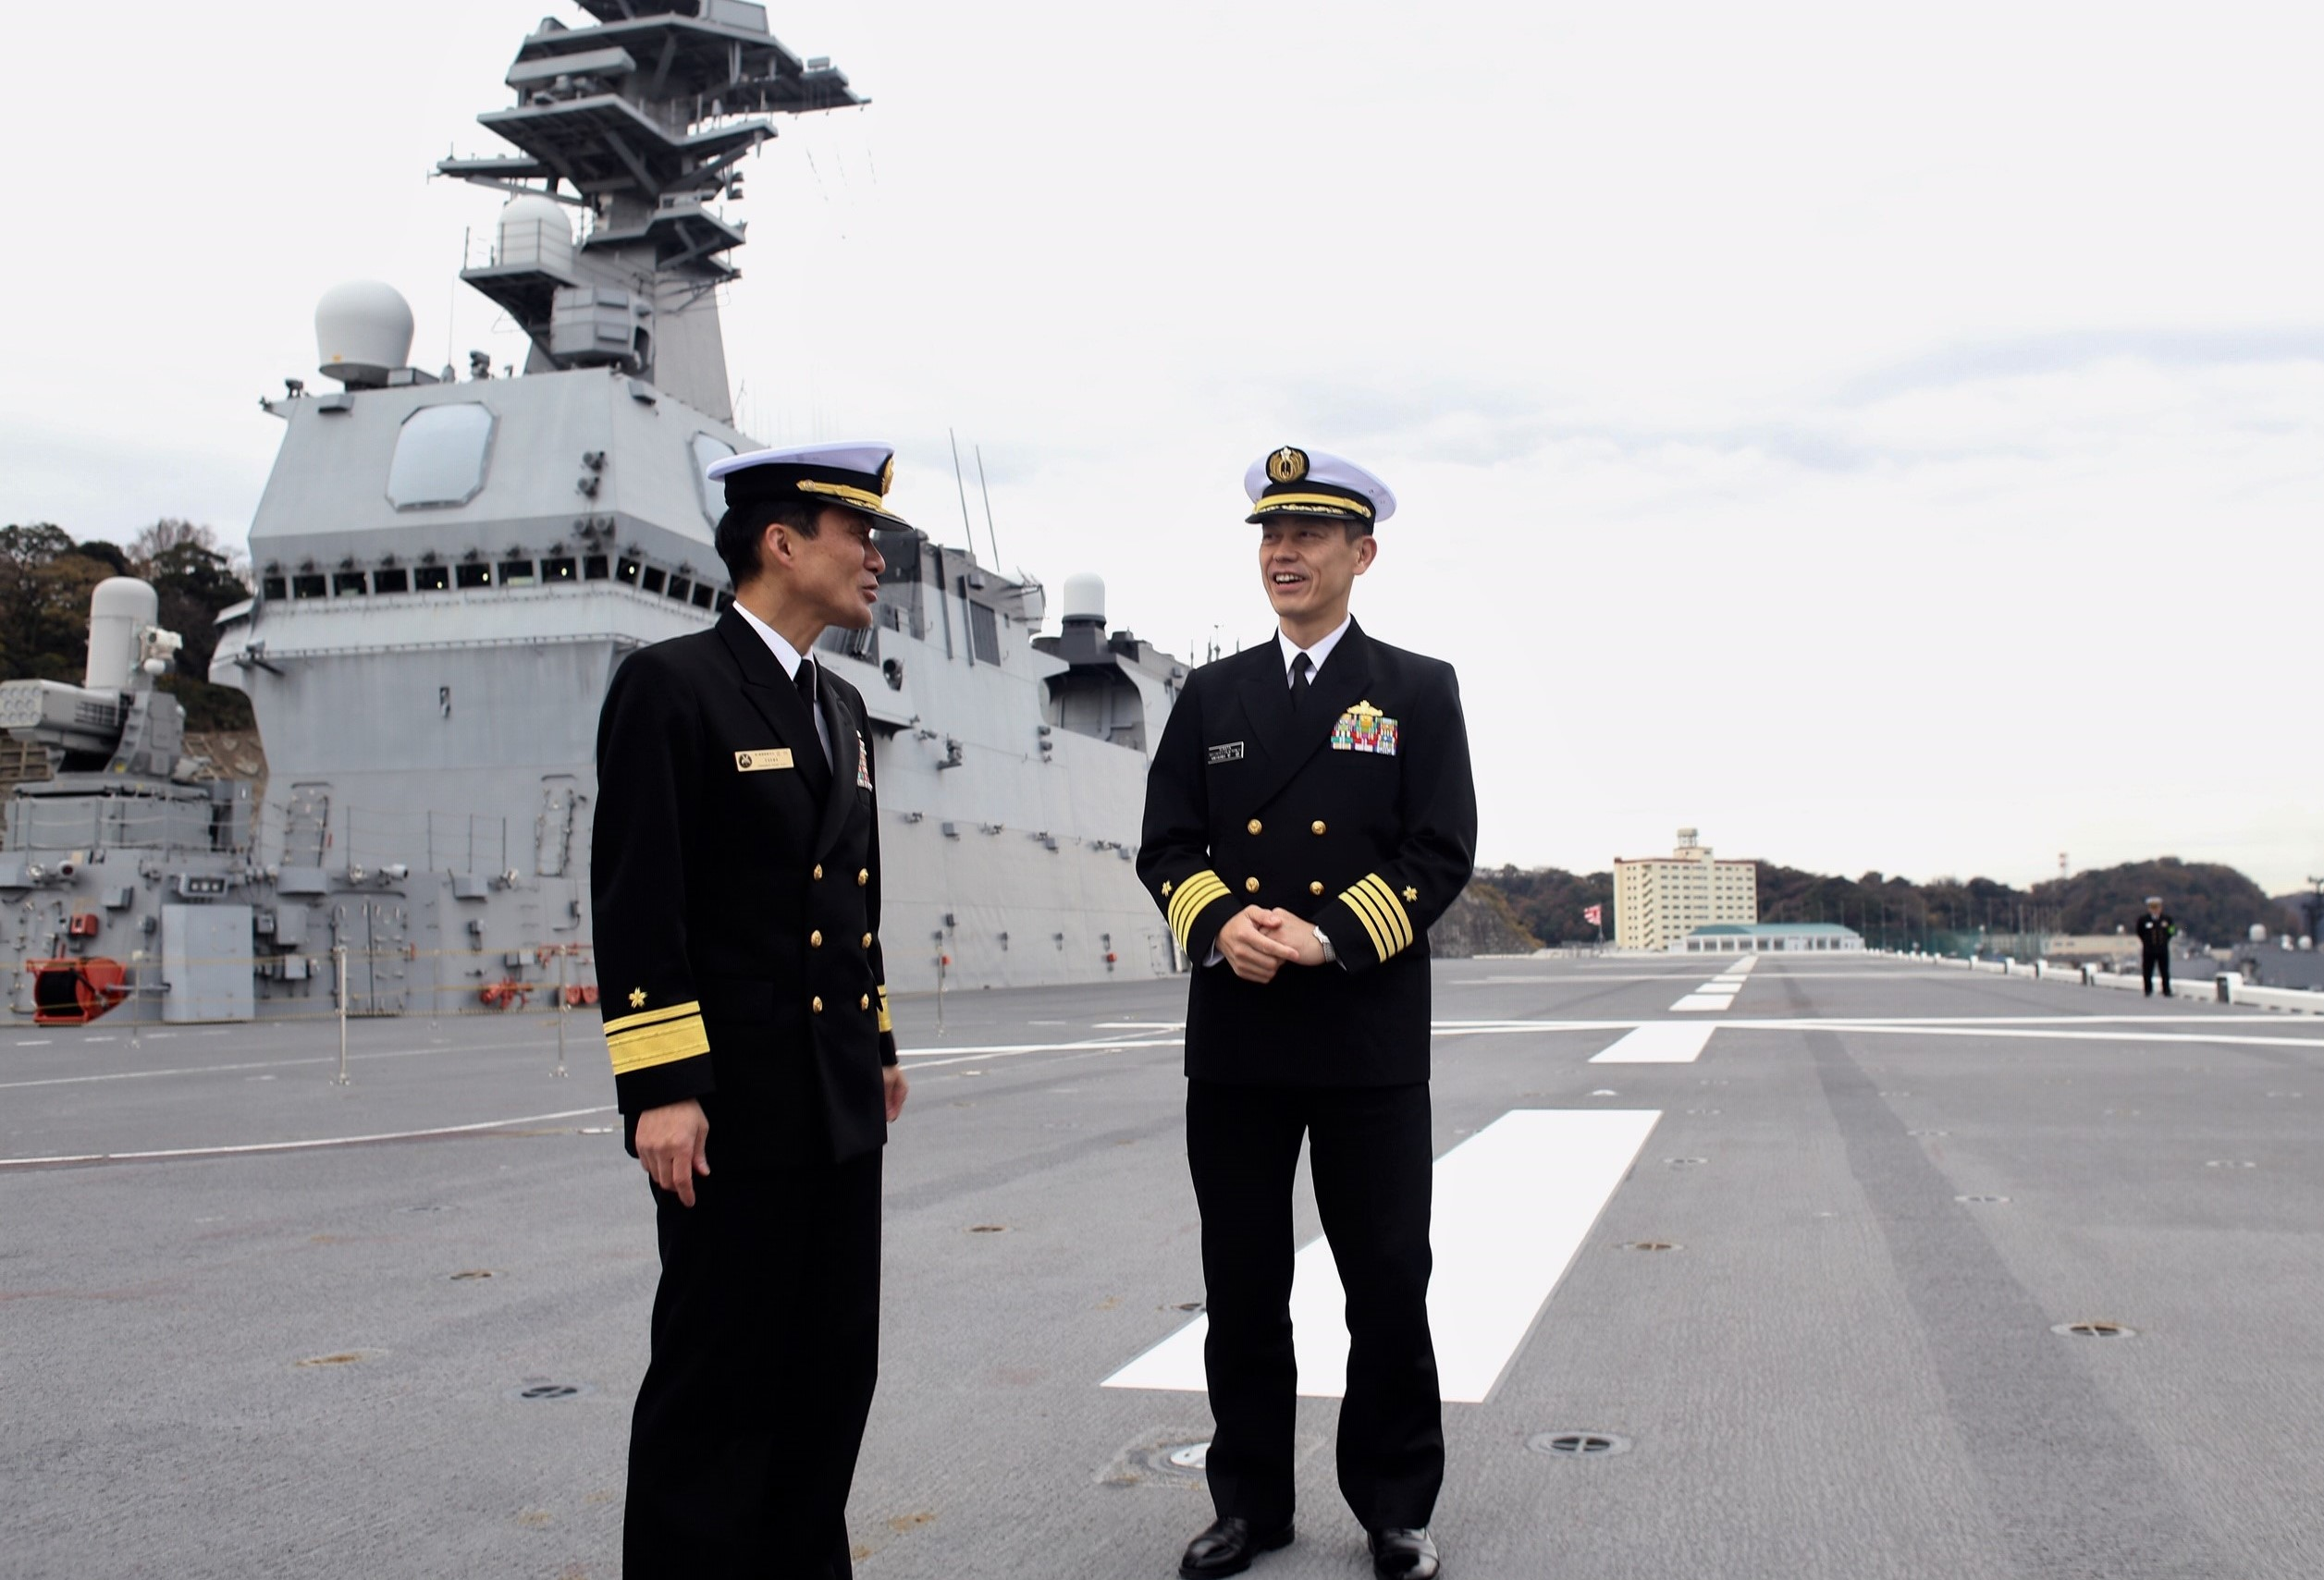 Japanese Maritime Self Defense Forces Capt. Katsuyoshi Motoyama, left, commanding officer of the JS Izumo, and Capt.Toshiyuki Hirata, deputy director of plans and programs, stand on the Izumo's flight deck in port at Naval Base Yokosuka in December. Japan is planning to convert the Izumo into an aircraft carrier and outfit it with F-35s in response to China's rapid military expansion. (Tara Copp/Military Times)